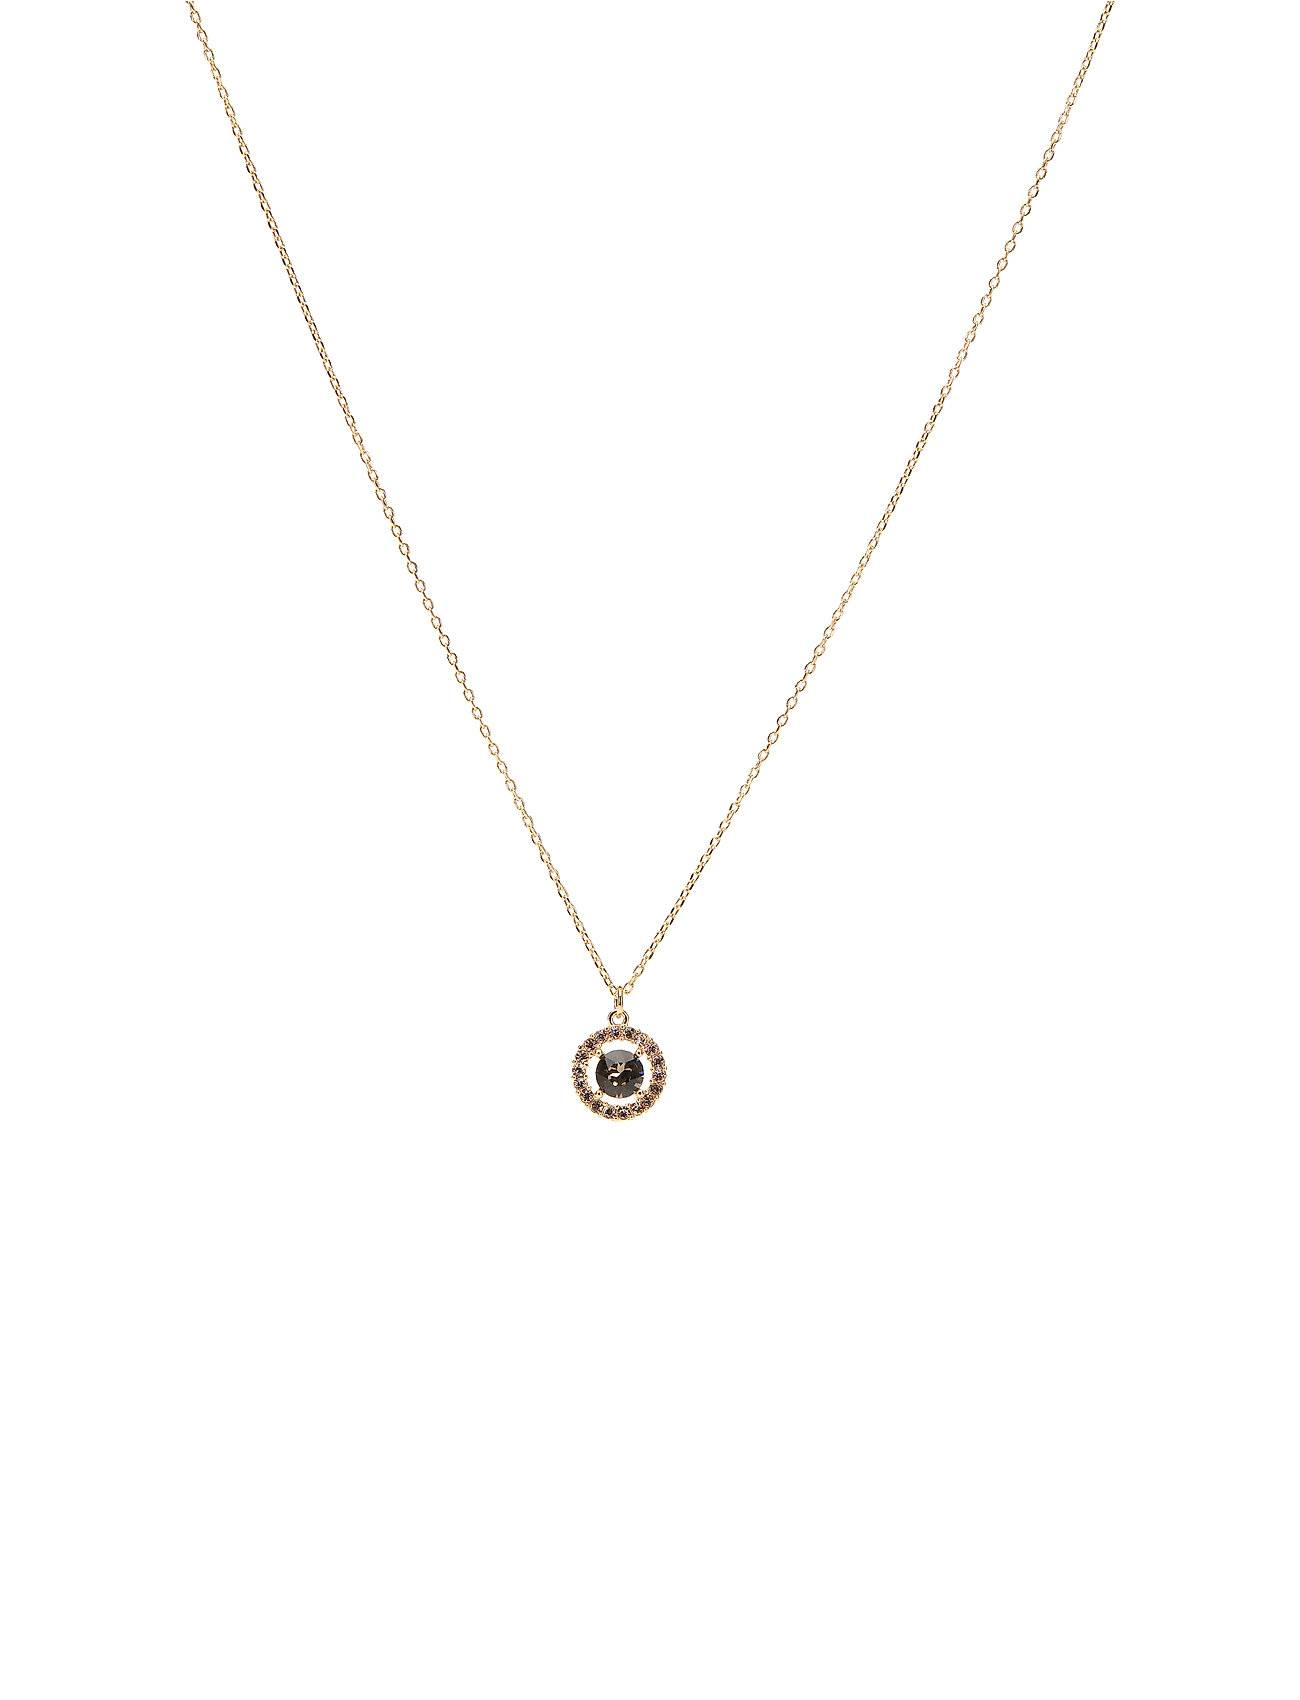 LILY AND ROSE Miss Miranda Necklace - Diamond Grey Accessories Jewellery Necklaces Dainty Necklaces Kulta LILY AND ROSE